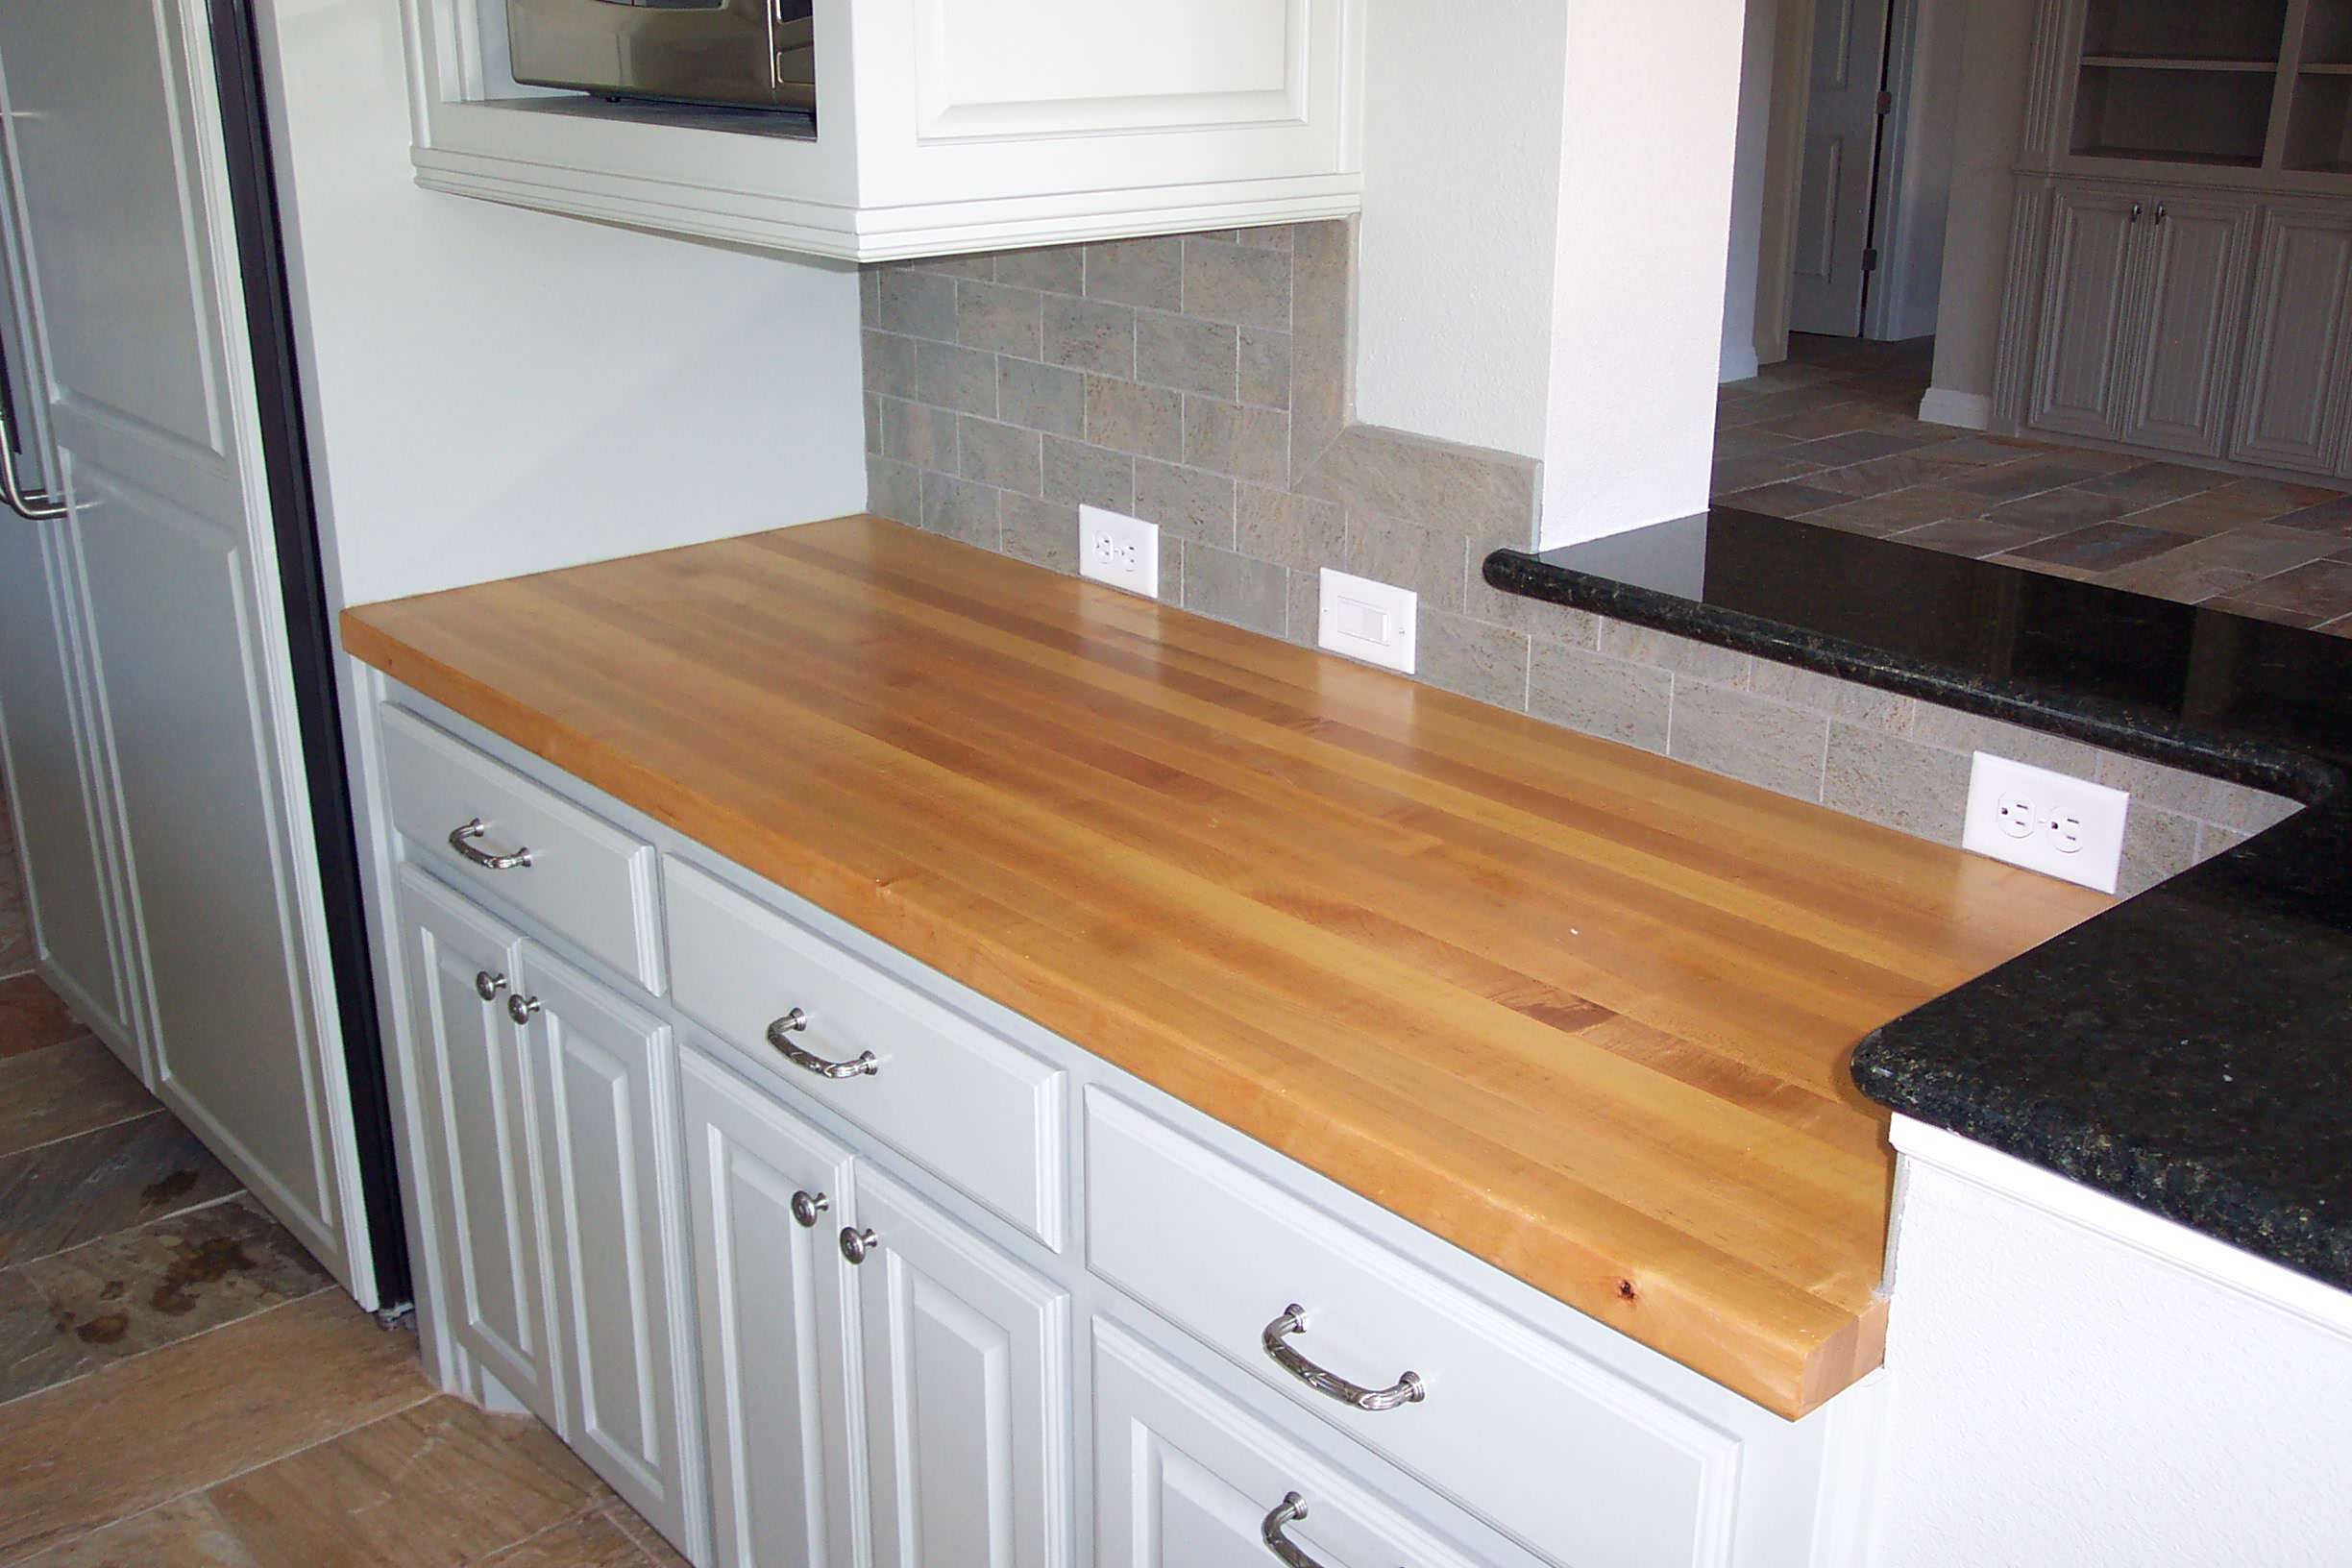 Maple Edge grain wood counter tops